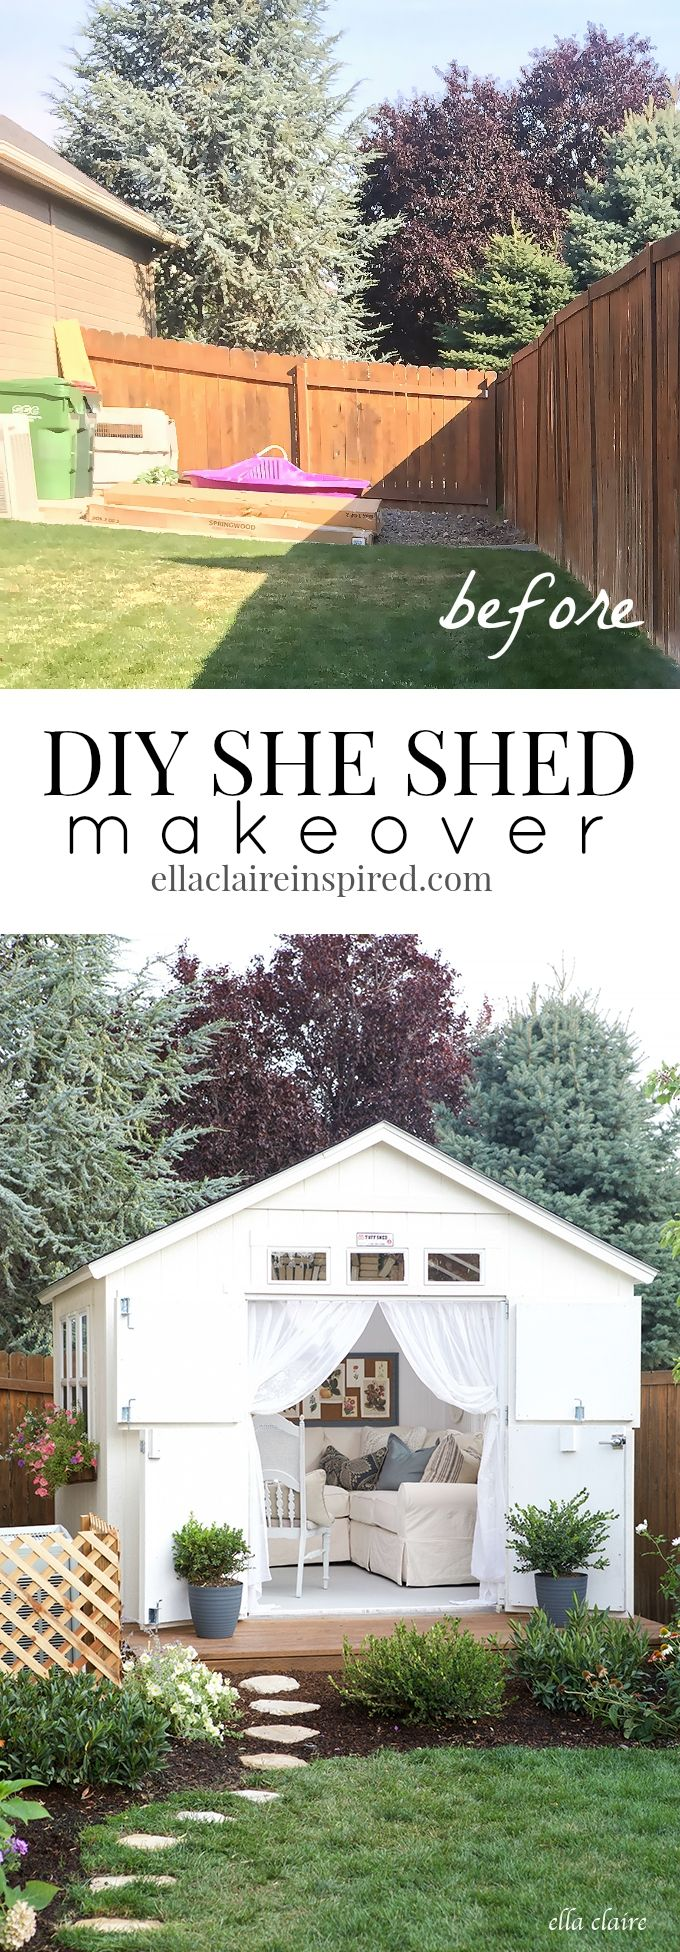 DIY She Shed makeover filled with charm and vintage inspired loveliness.